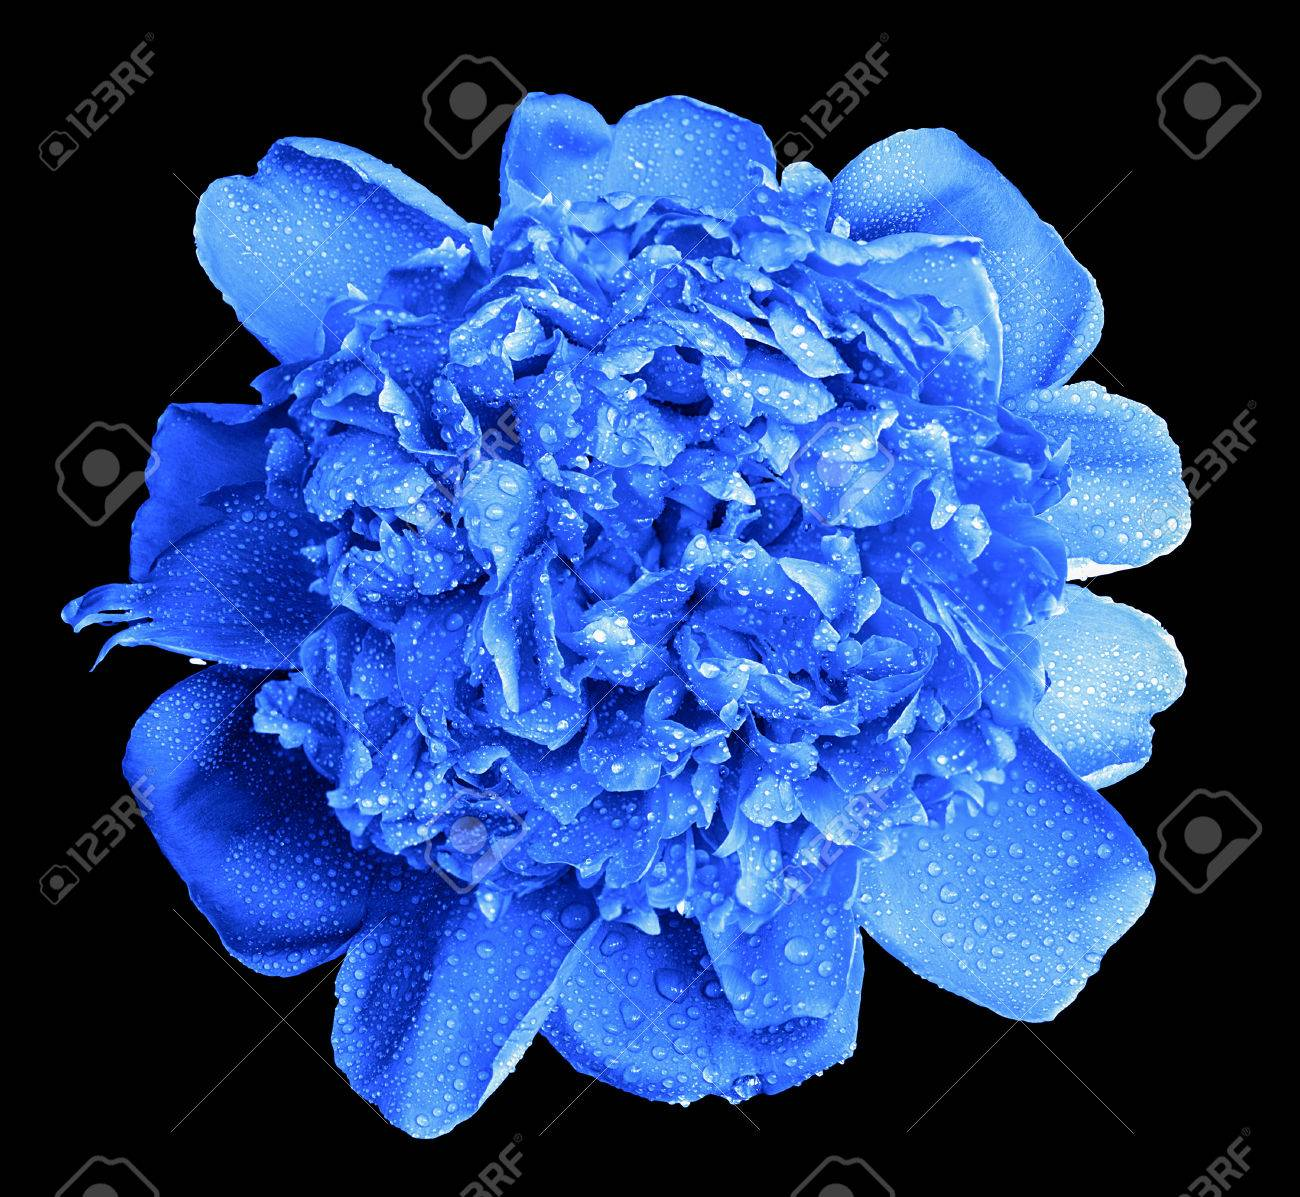 Pianese Flowers Surreal Wet Blue Peony Flower Macro Isolated On Black